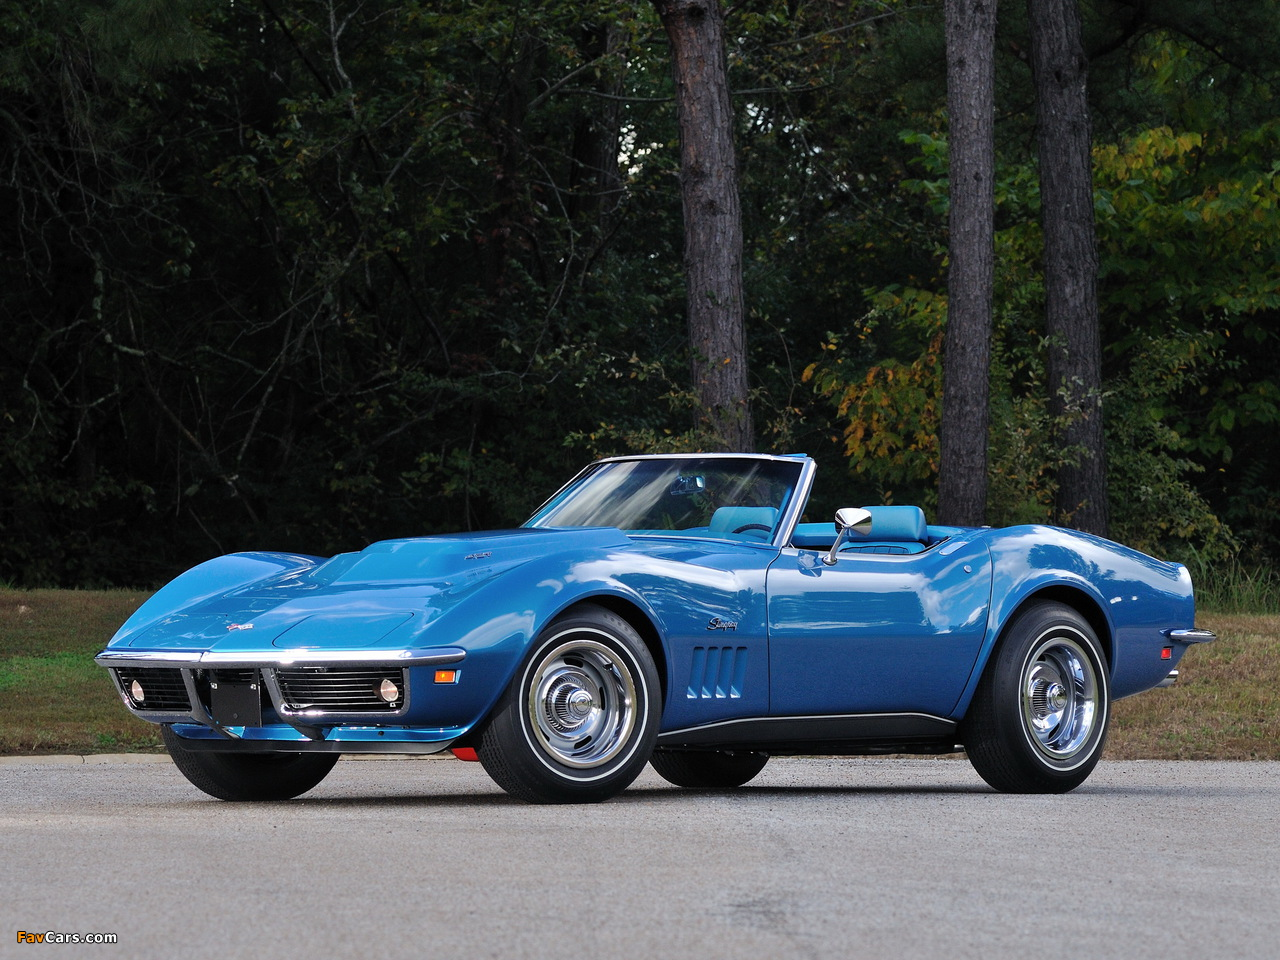 1969 Corvette Stingray >> Pictures of Corvette Stingray L88 427 Convertible (C3) 1969 (1280x960)